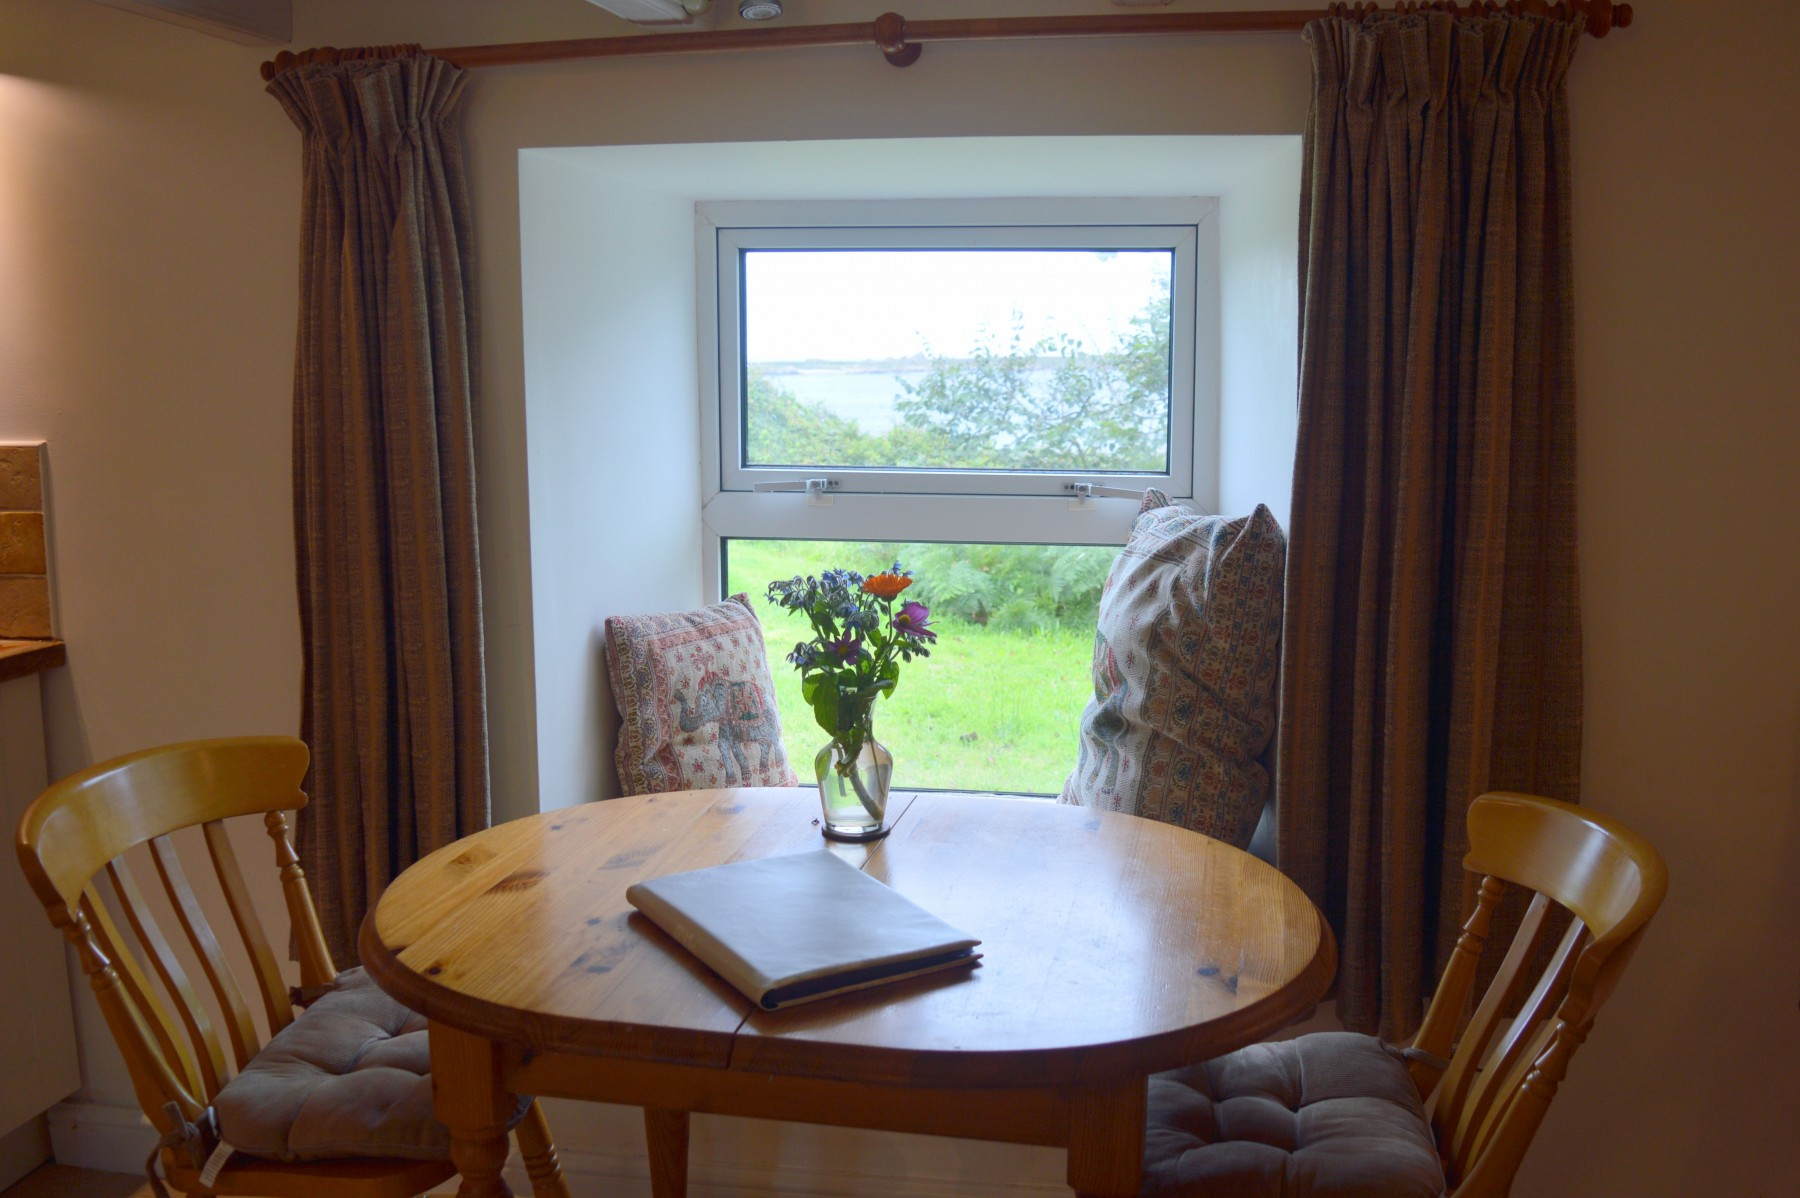 Dining table and window seat